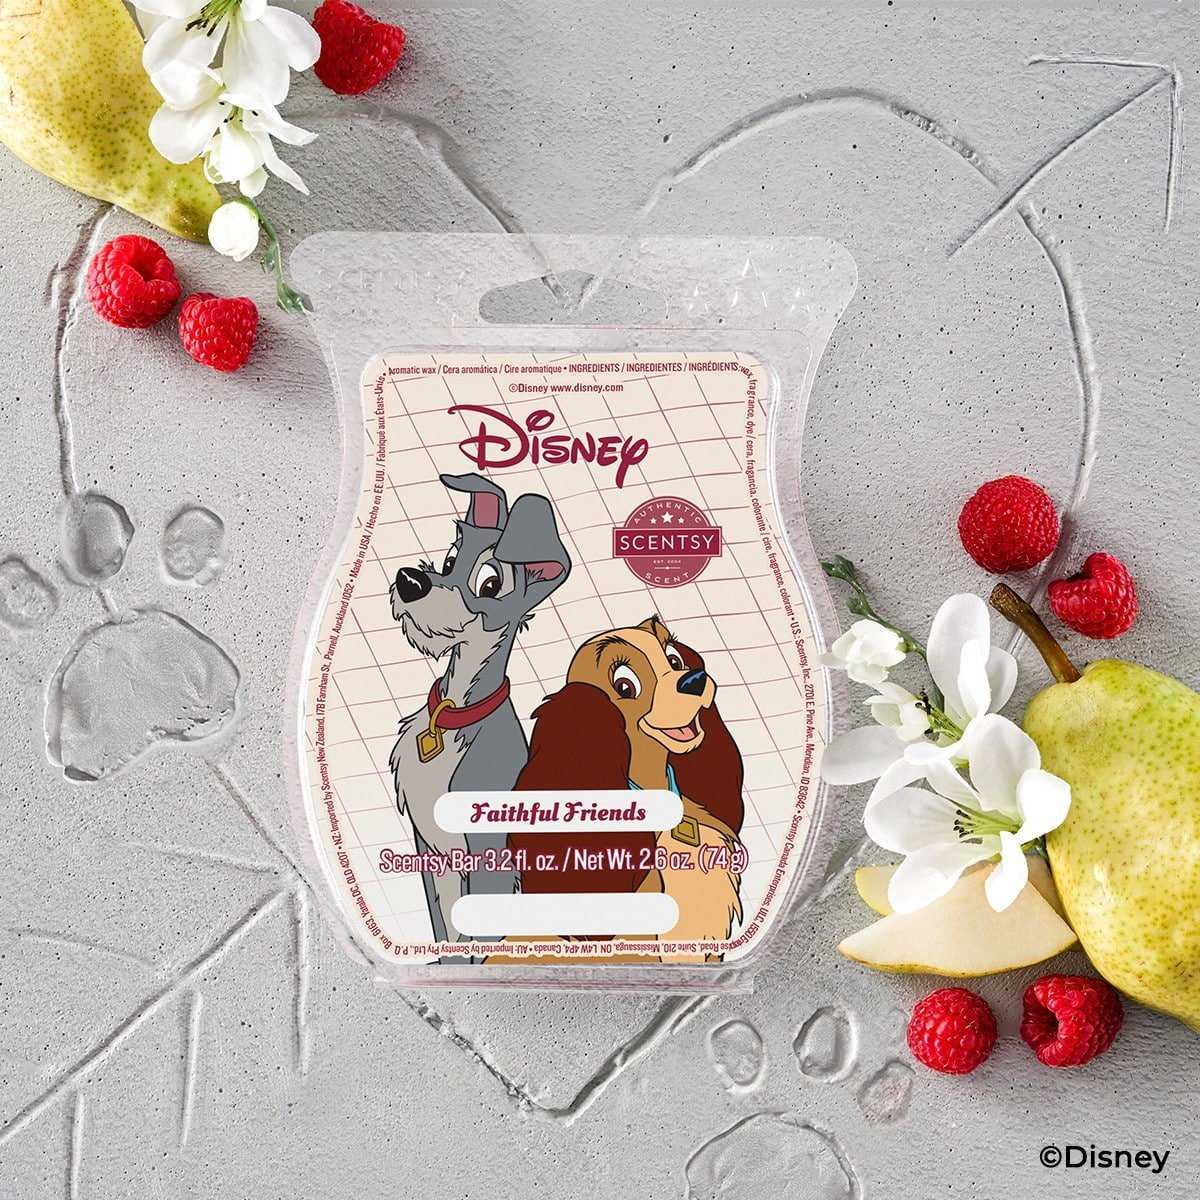 NEW! Disney Lady & The Tramp Scentsy Collection